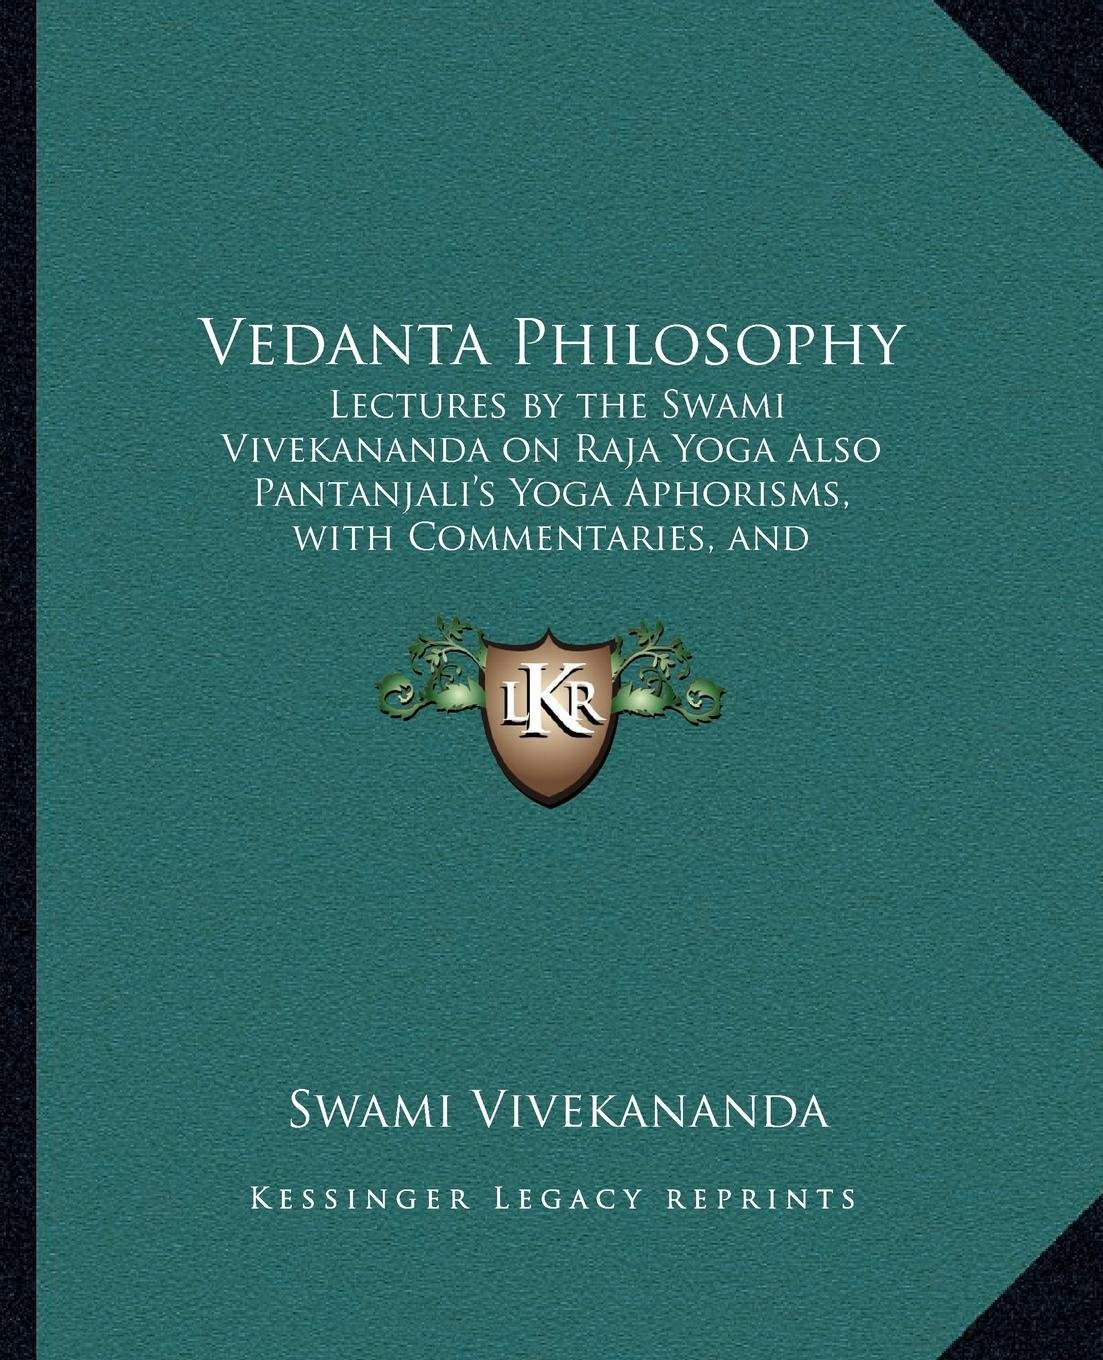 Amazon.com: Vedanta Philosophy: Lectures by the Swami ...